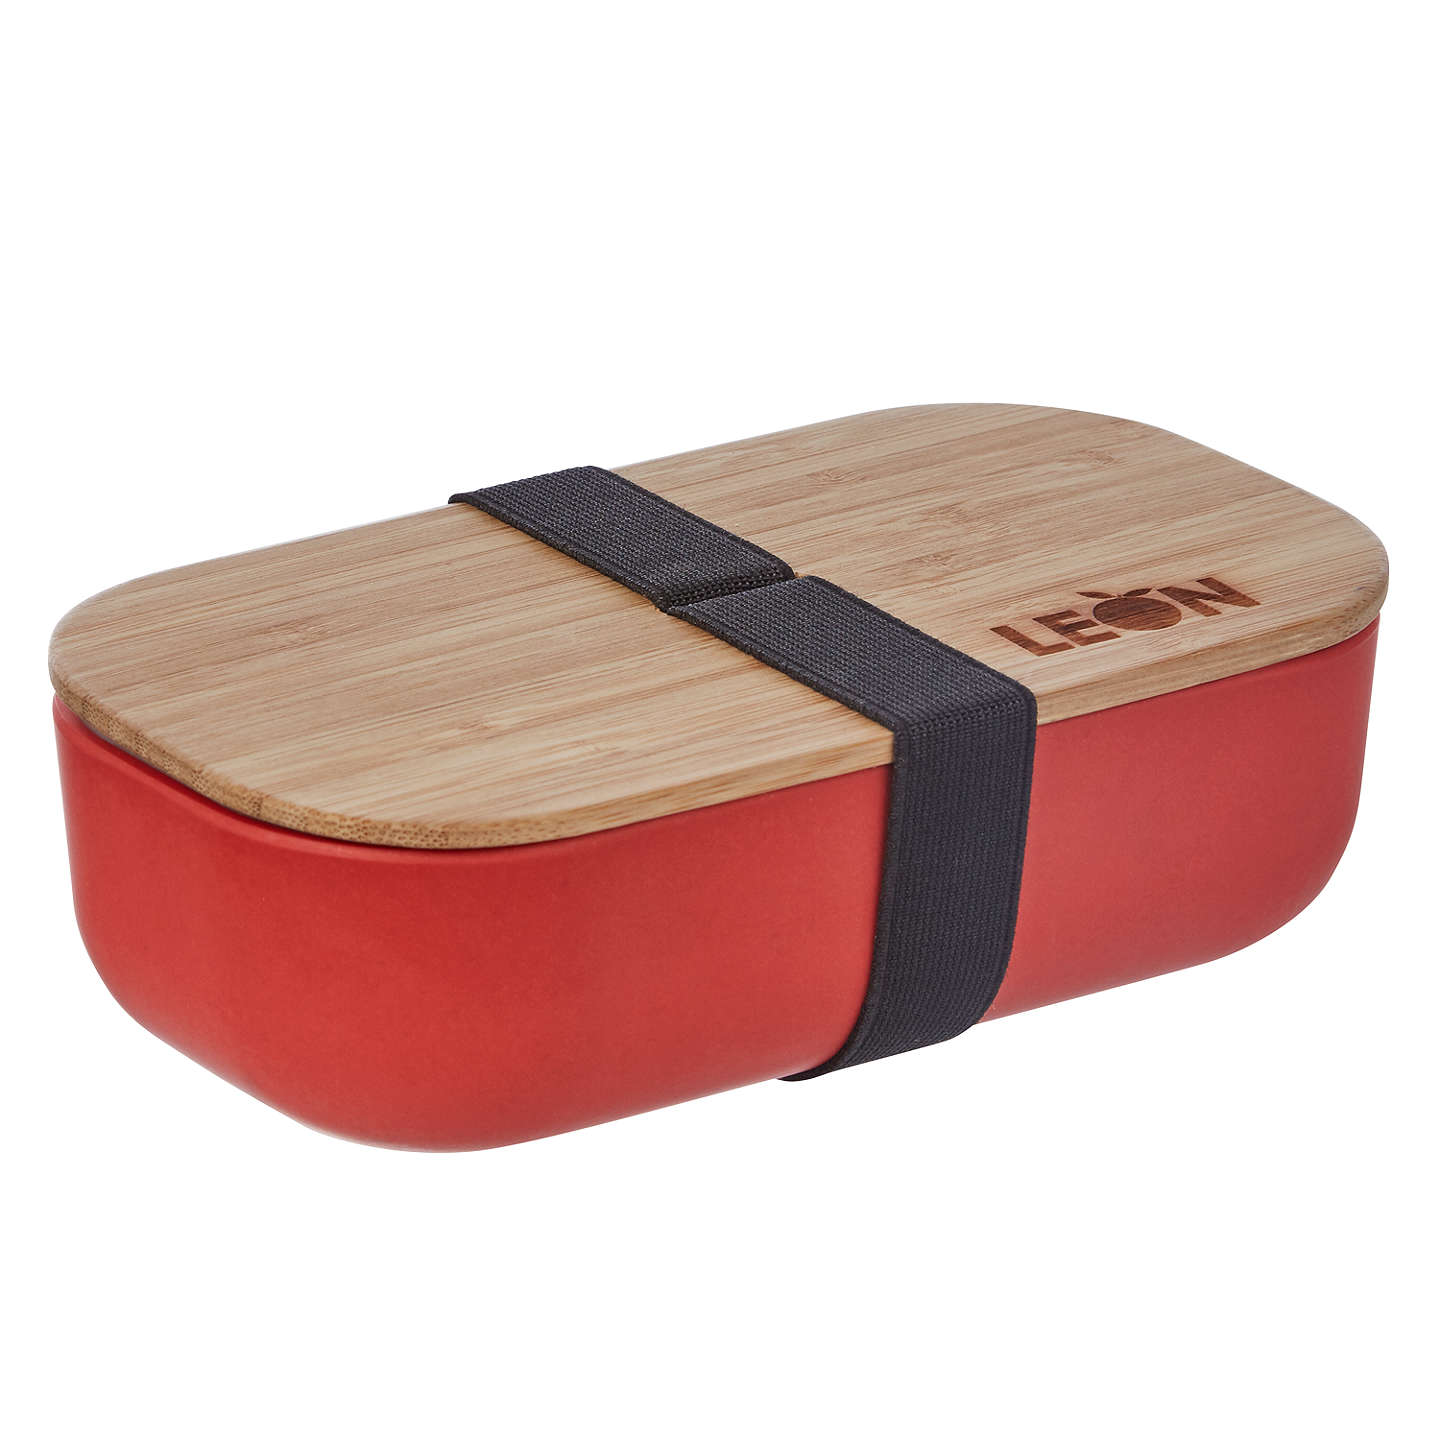 BuyLEON Rectangle Bamboo Lunch Pot Online at johnlewis.com